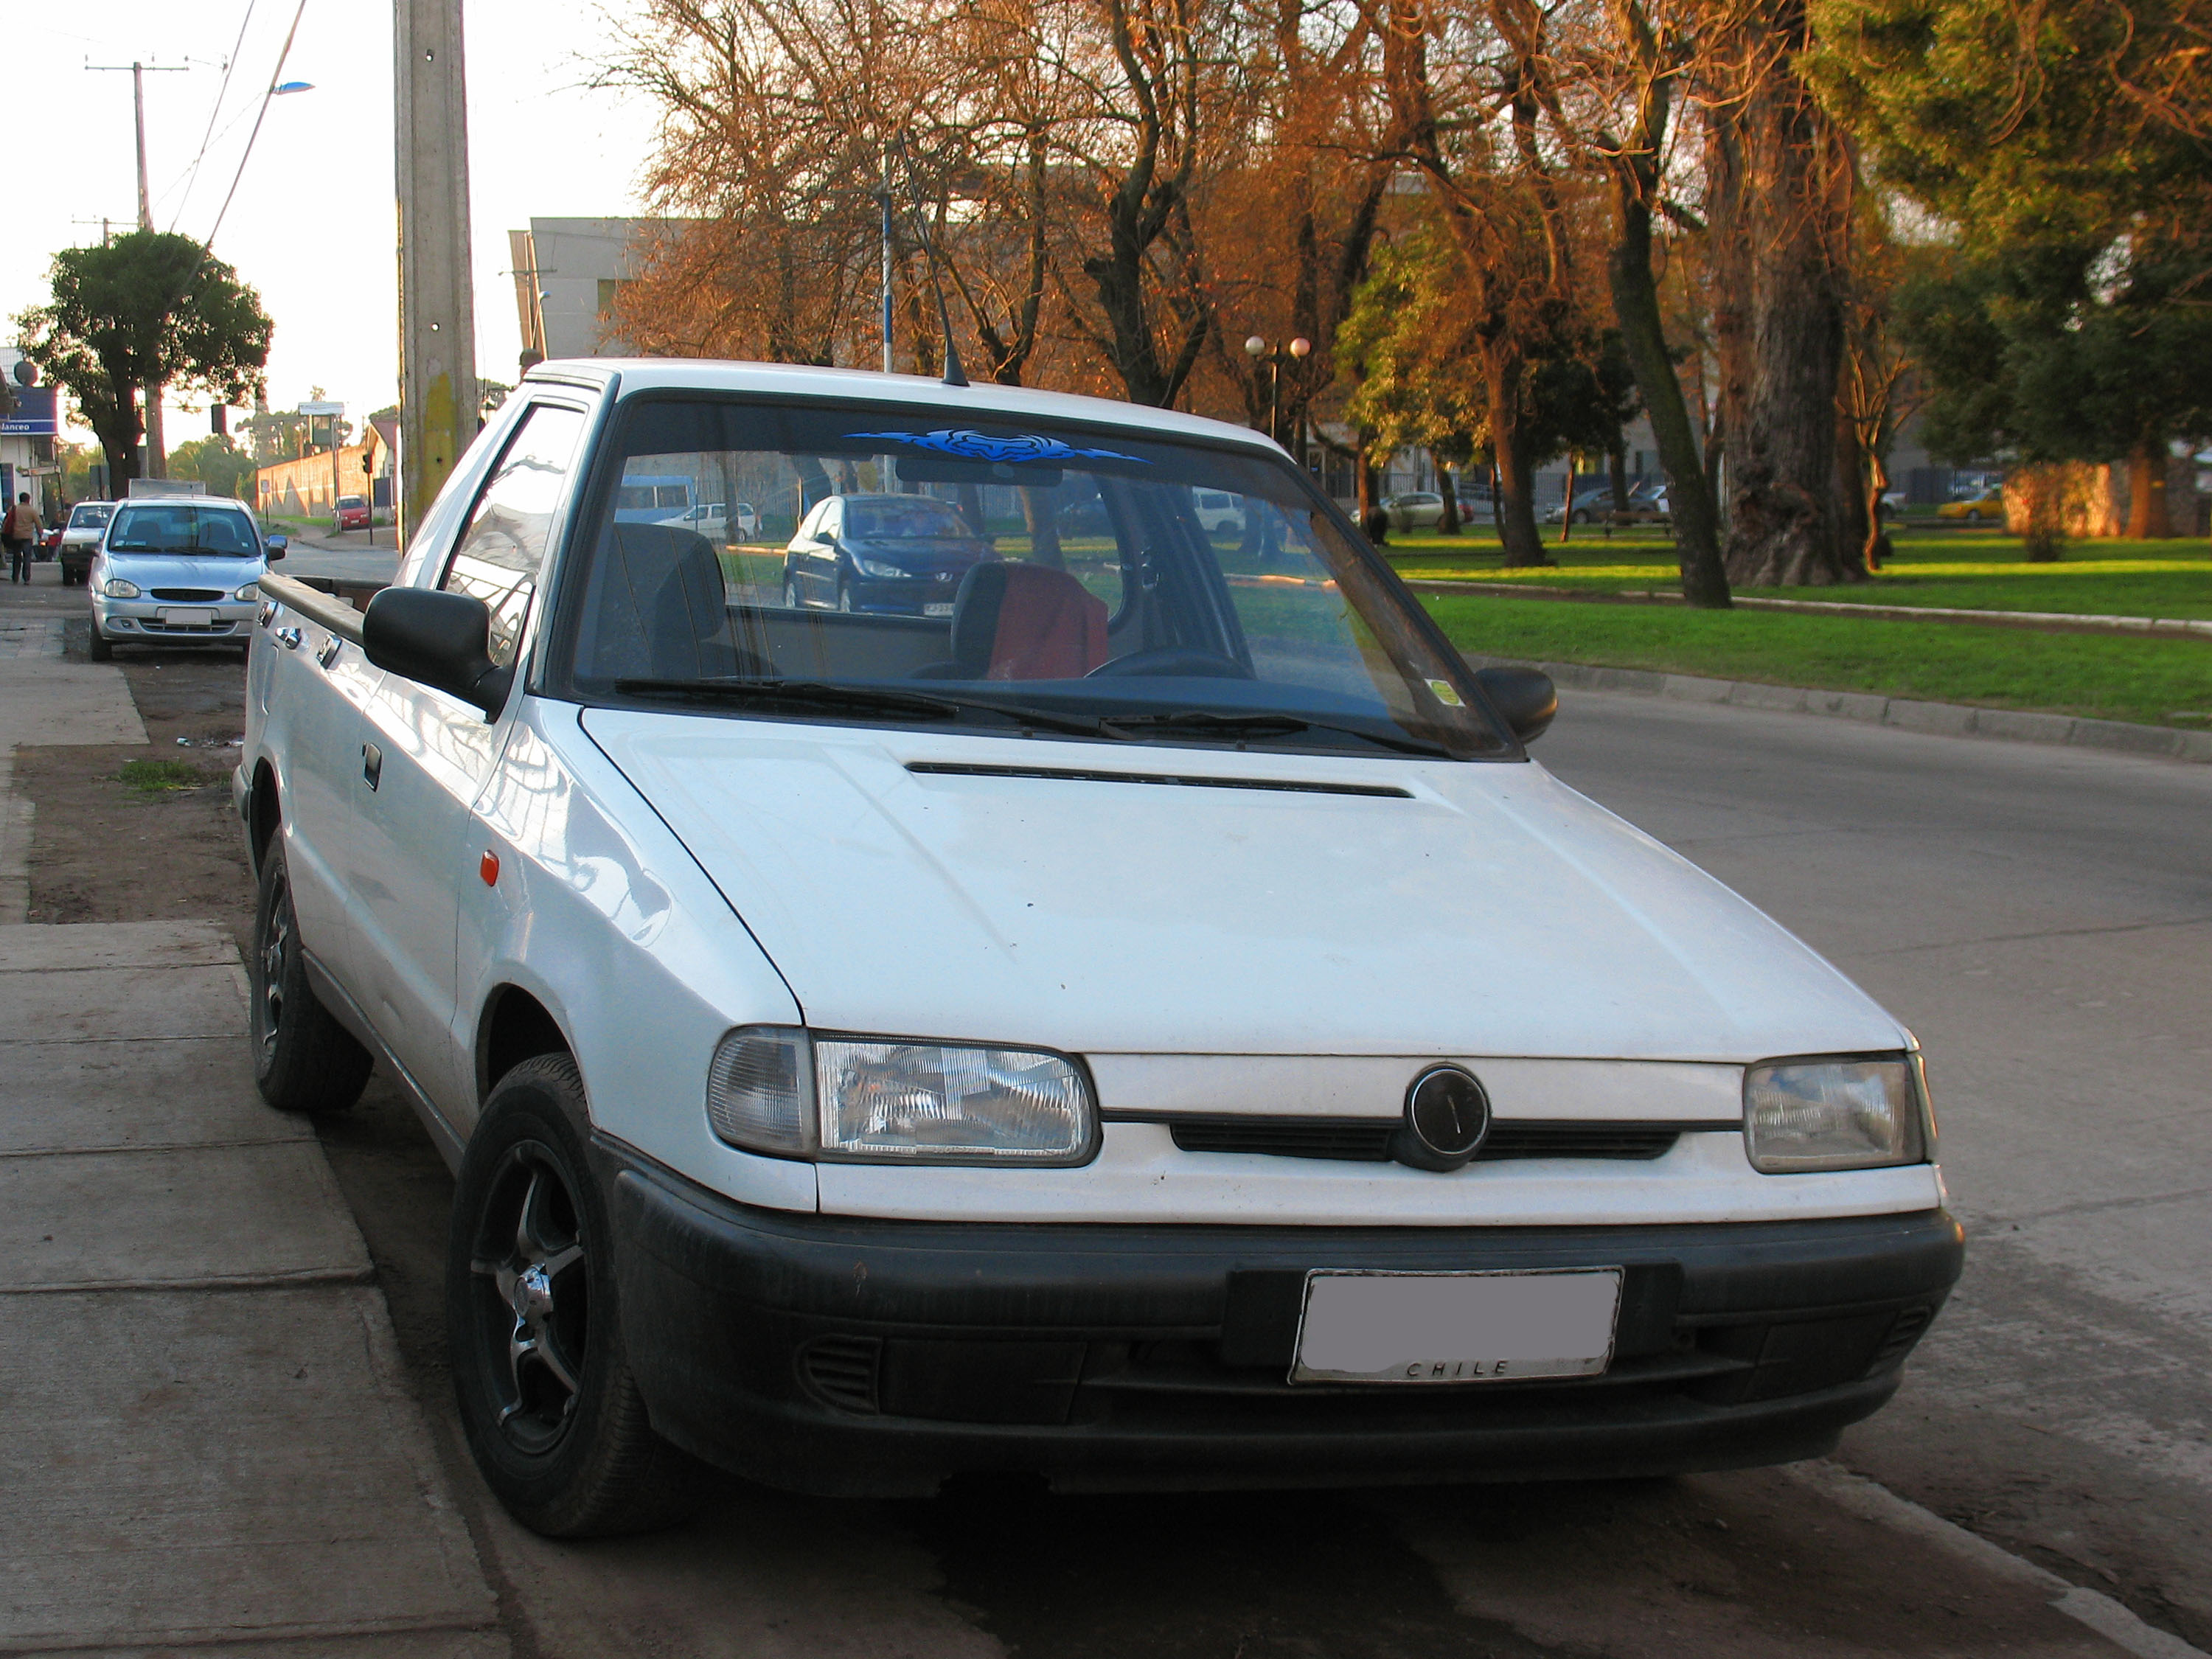 FileSkoda Felicia 13 LX Pick Up 1999 18271456851